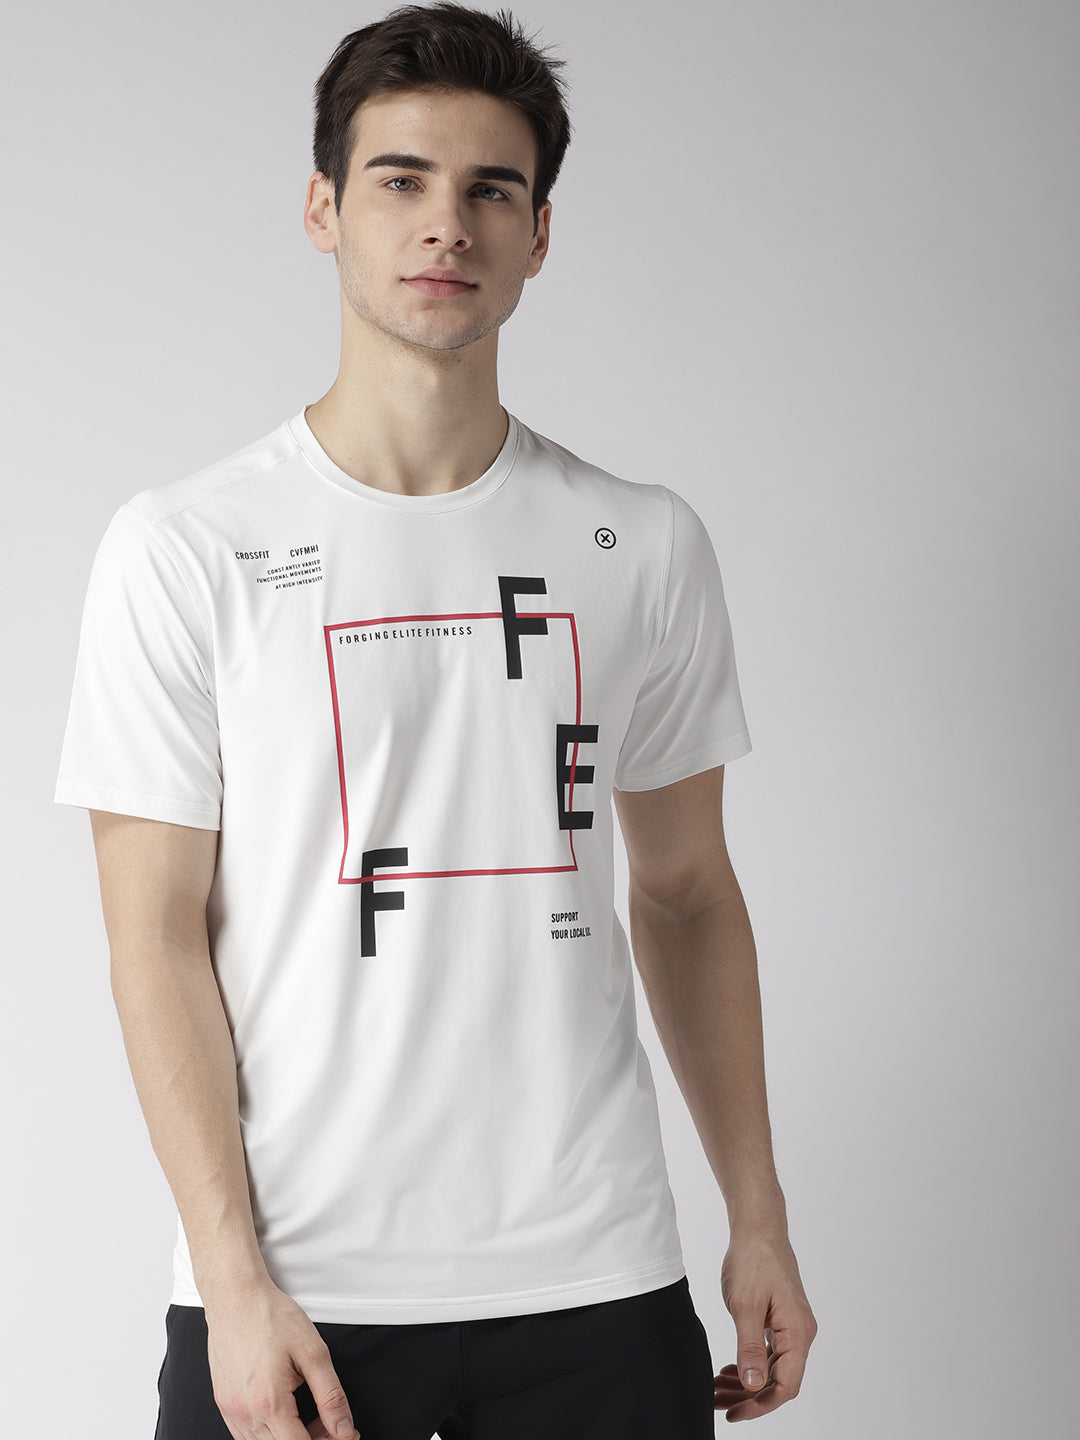 Mens White/Red Graphic Print T-shirt